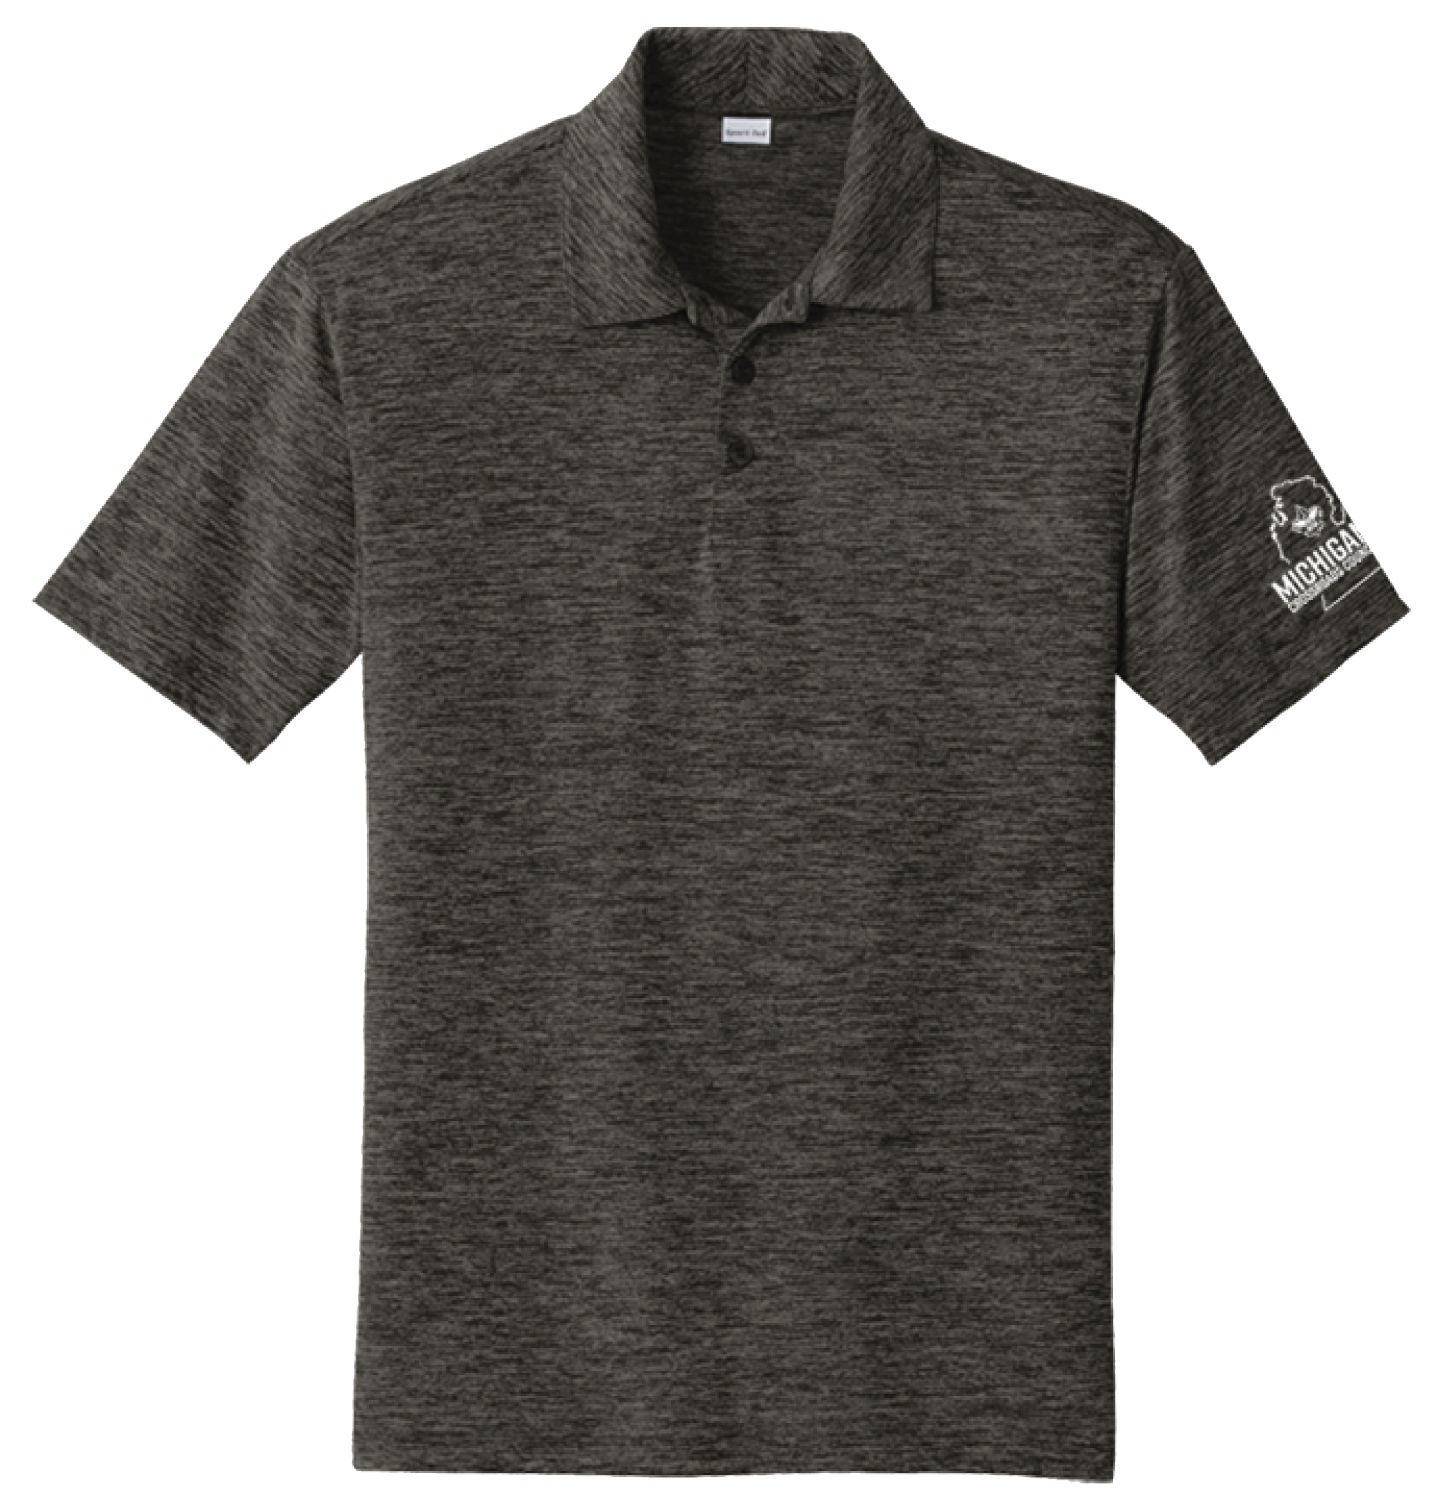 Sport Tek Posicharge Electric Heater Polo Michigan Crossroads Council Boy Scouts Of America Sports and casual pique polo shirts in a variety of colours. michigan crossroads council